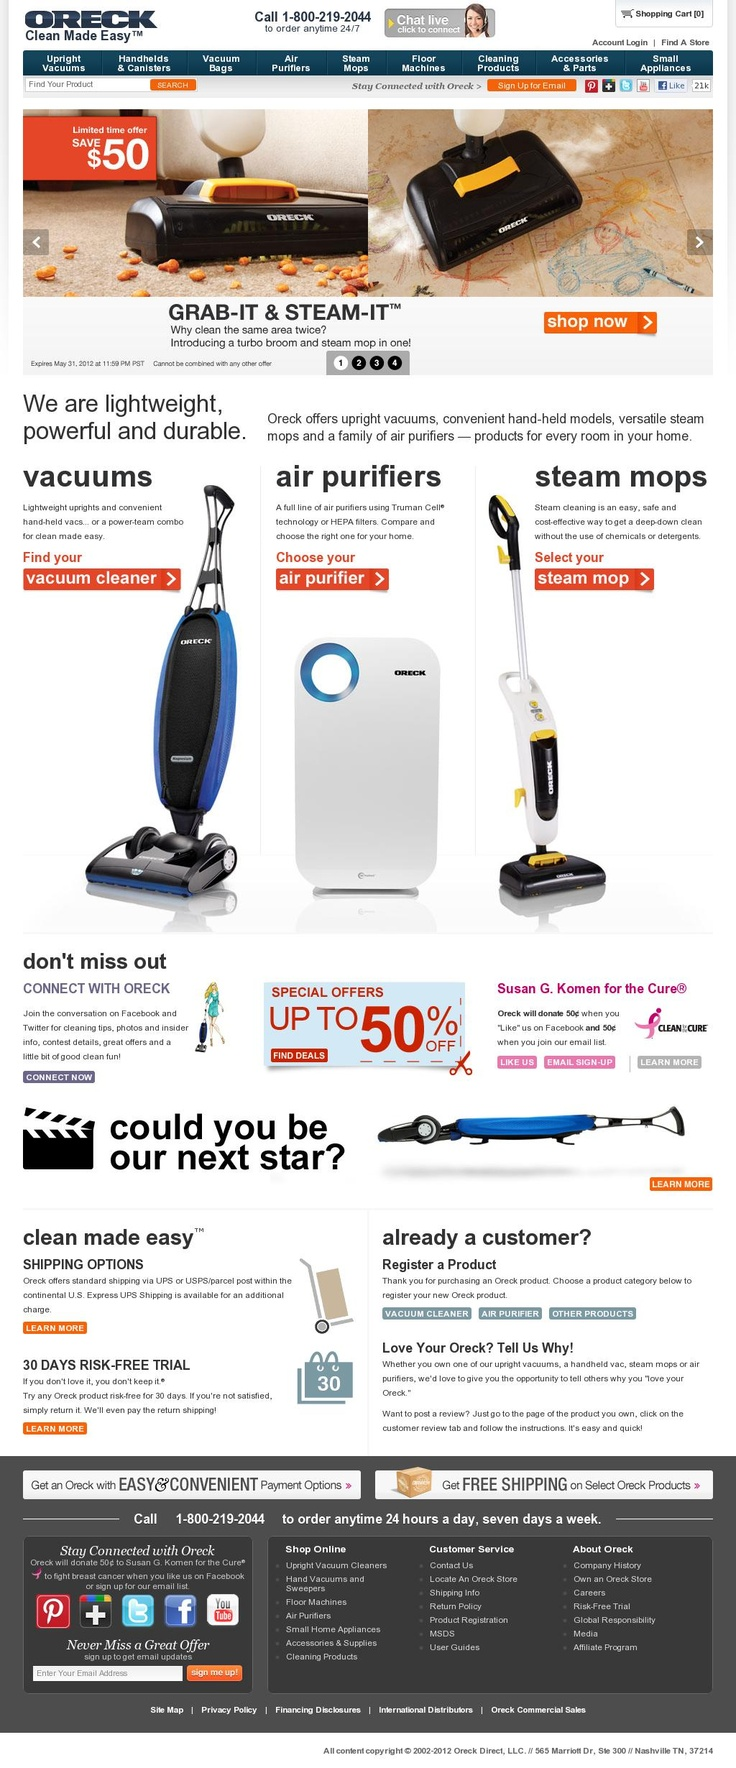 Oreck Making Vaccum Cleaners Visual on Pinterest